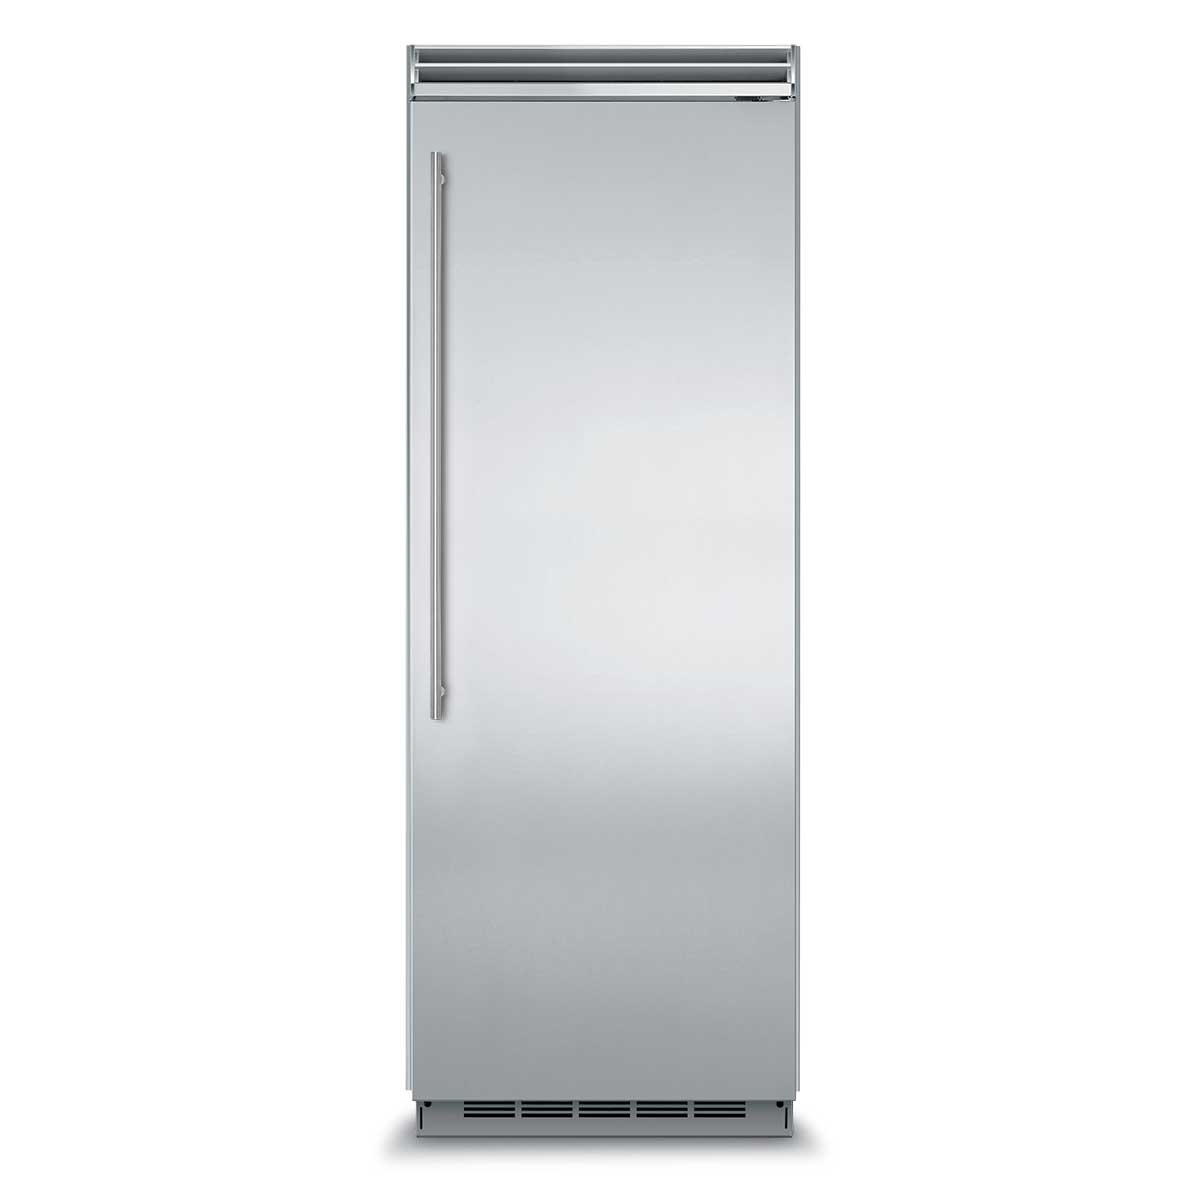 "Marvel  Marvel Professional Built-In 30"" All Freezer- Solid Stainless Steel Door  Left Hinge, Slim Designer Handle"